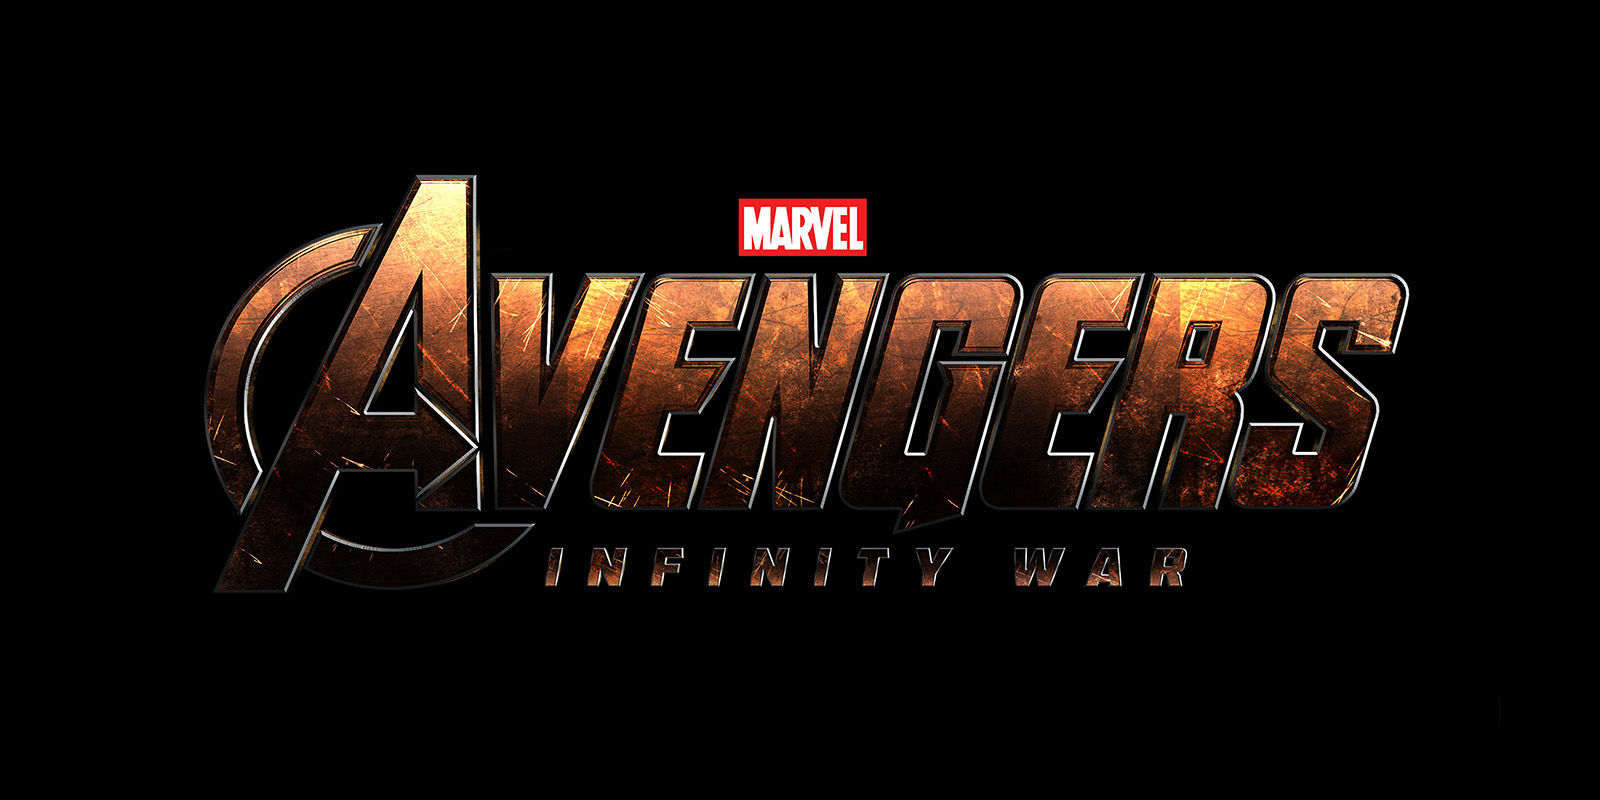 The Avengers: Infinity War logo